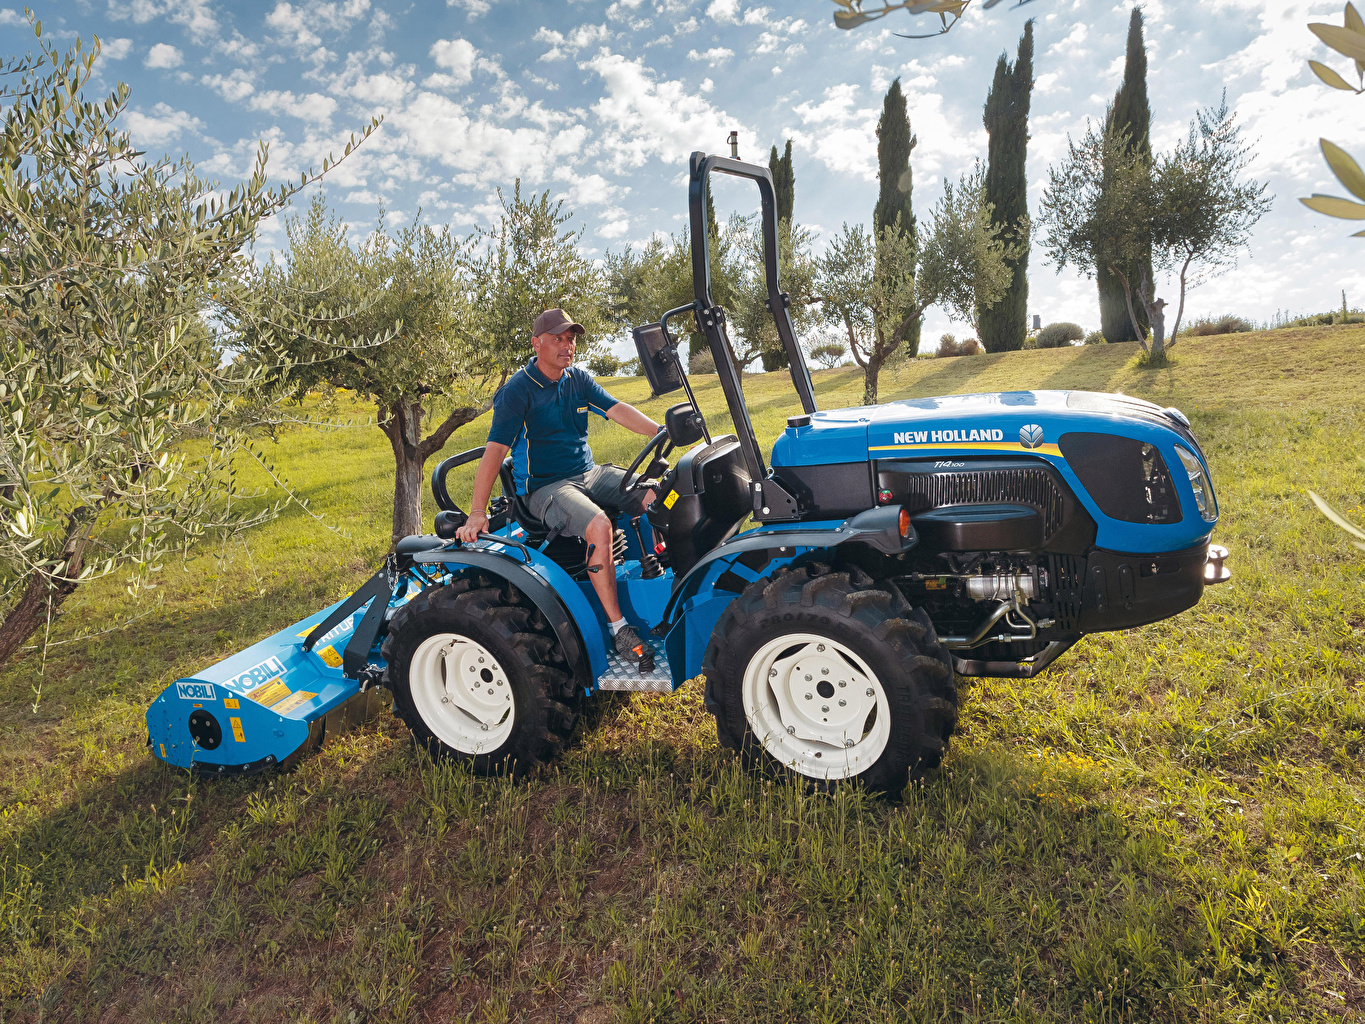 Images Agricultural machinery Man 2018-20 New Holland TI4.100 Men